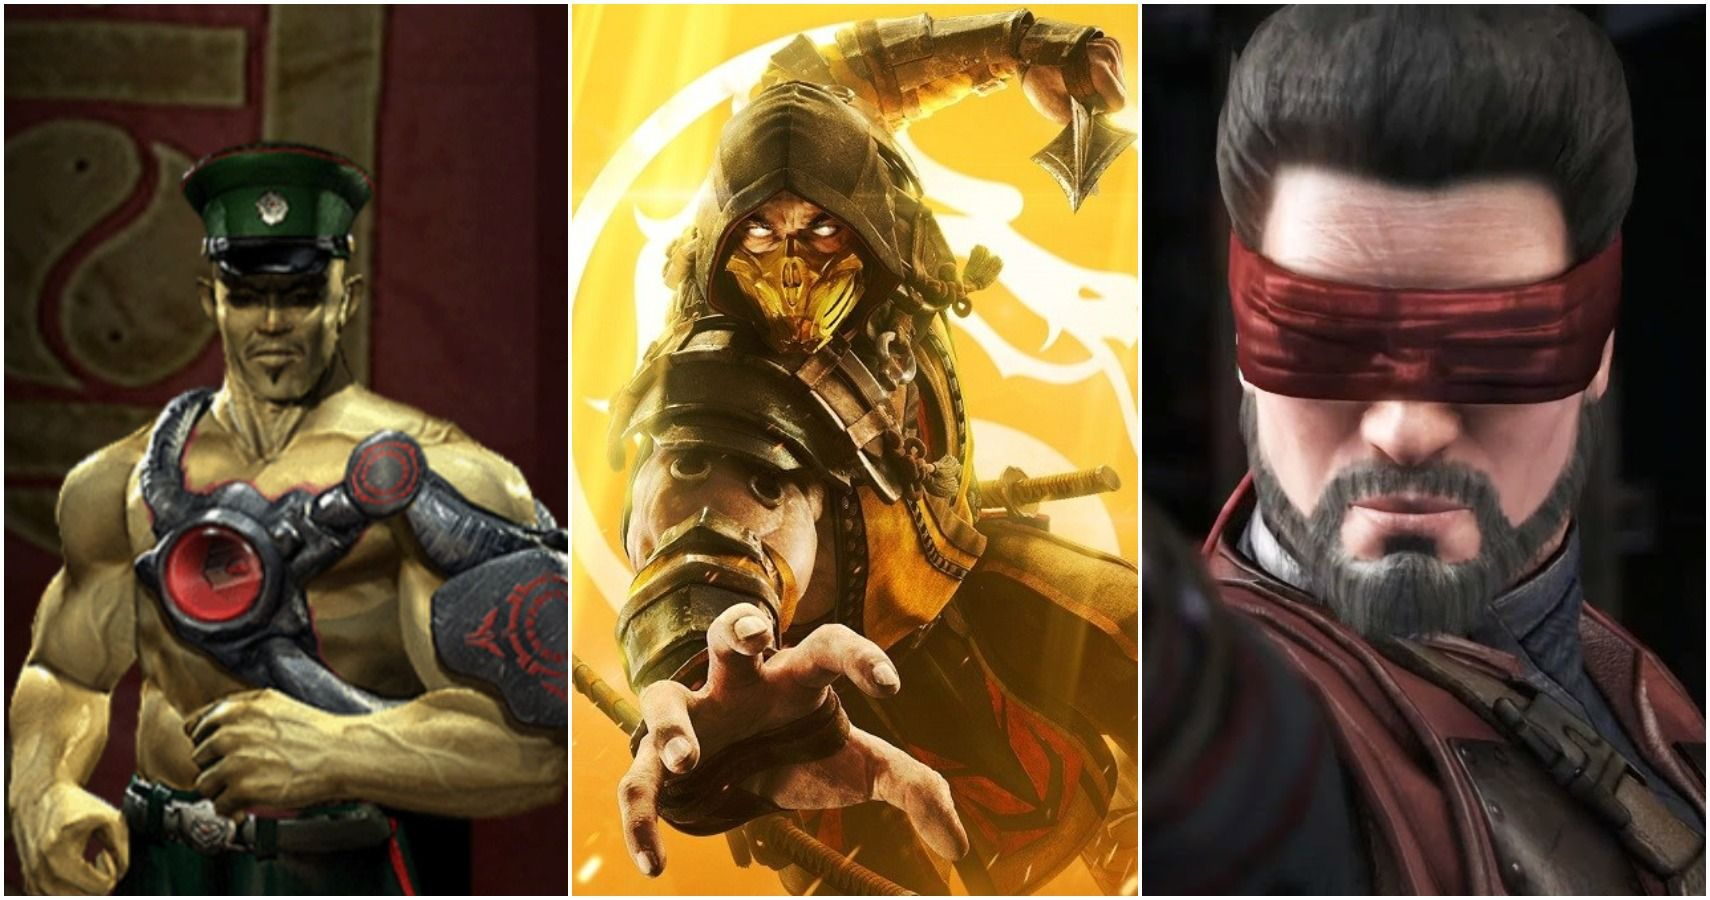 5 Mortal Kombat 11 Dlc Characters We Want In The Game – Fondos de